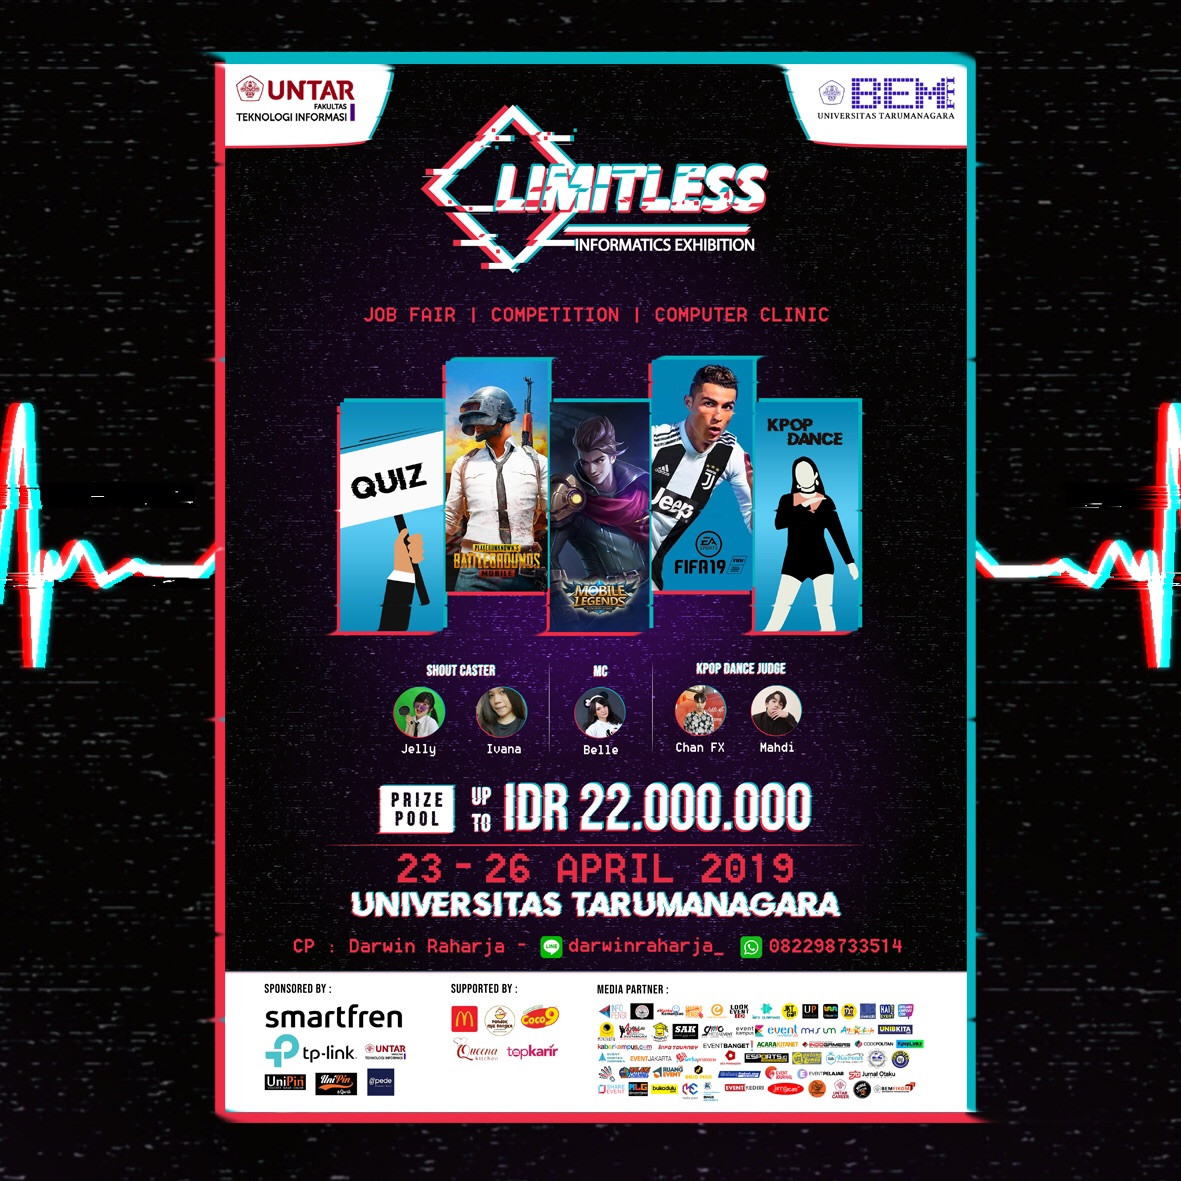 BEM FTI UNTAR PROUDLY PRESENTS Informatics Exhibition 2019